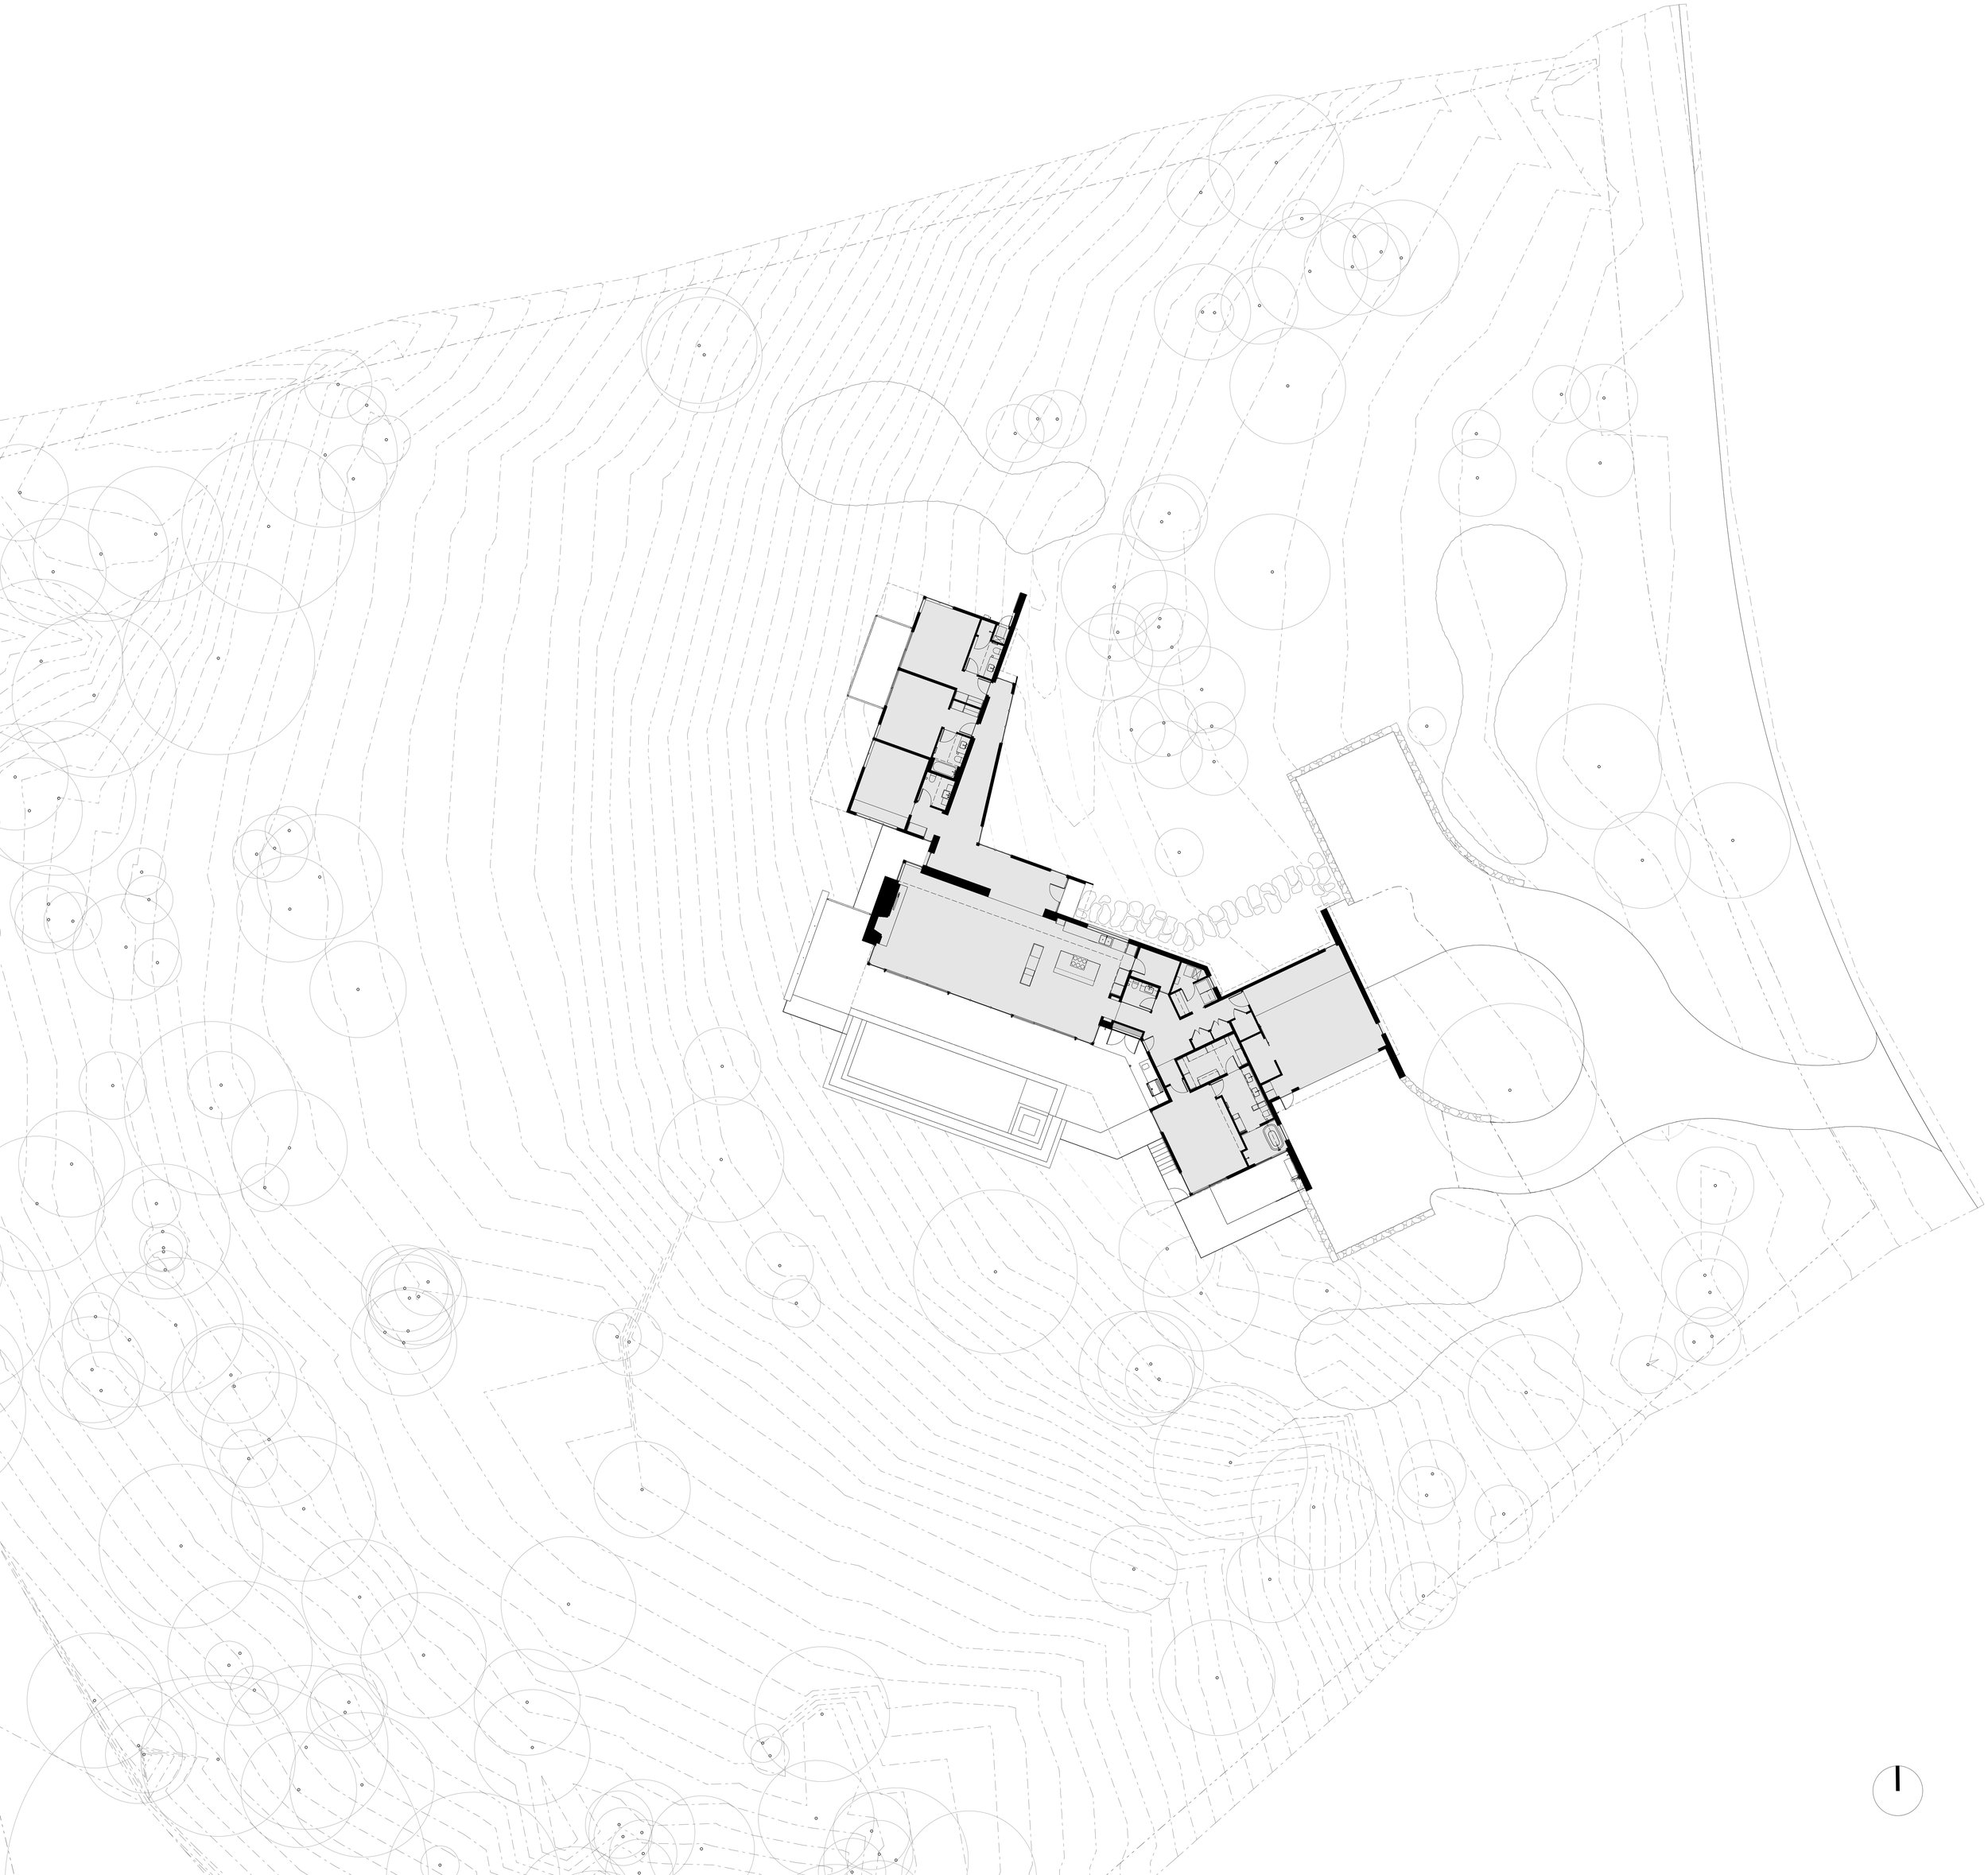 190716_linker_floor plan marketing_smaller.jpg